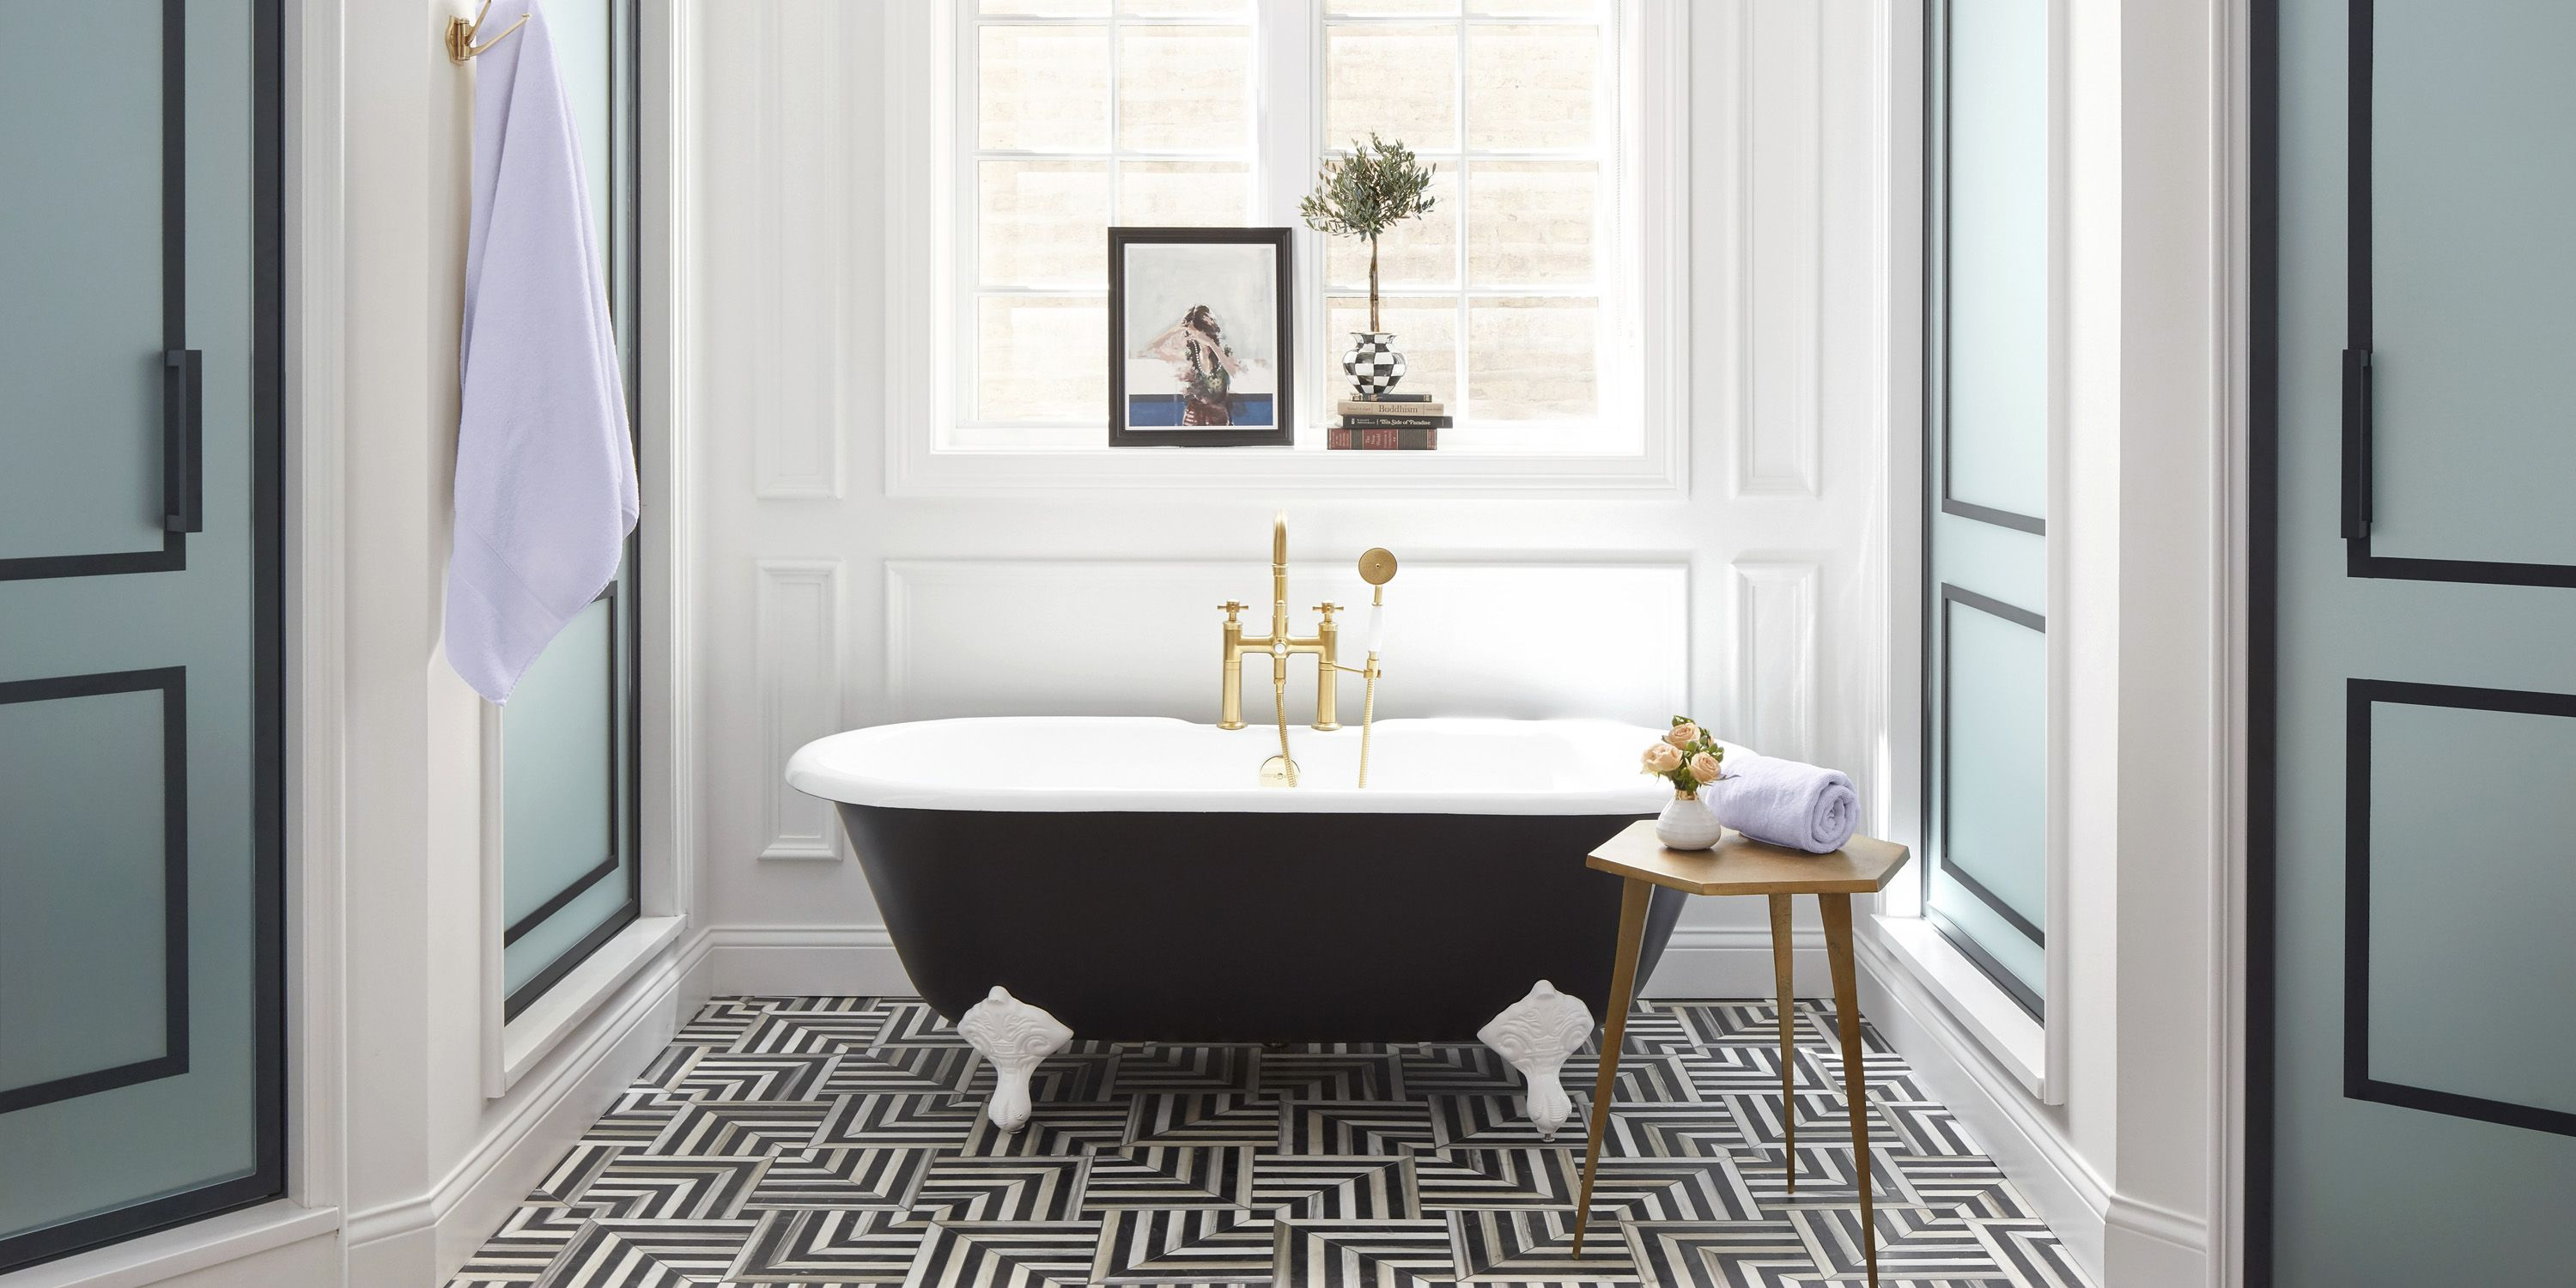 20 Traditional Bathroom Designs - Timeless Bathroom Ideas